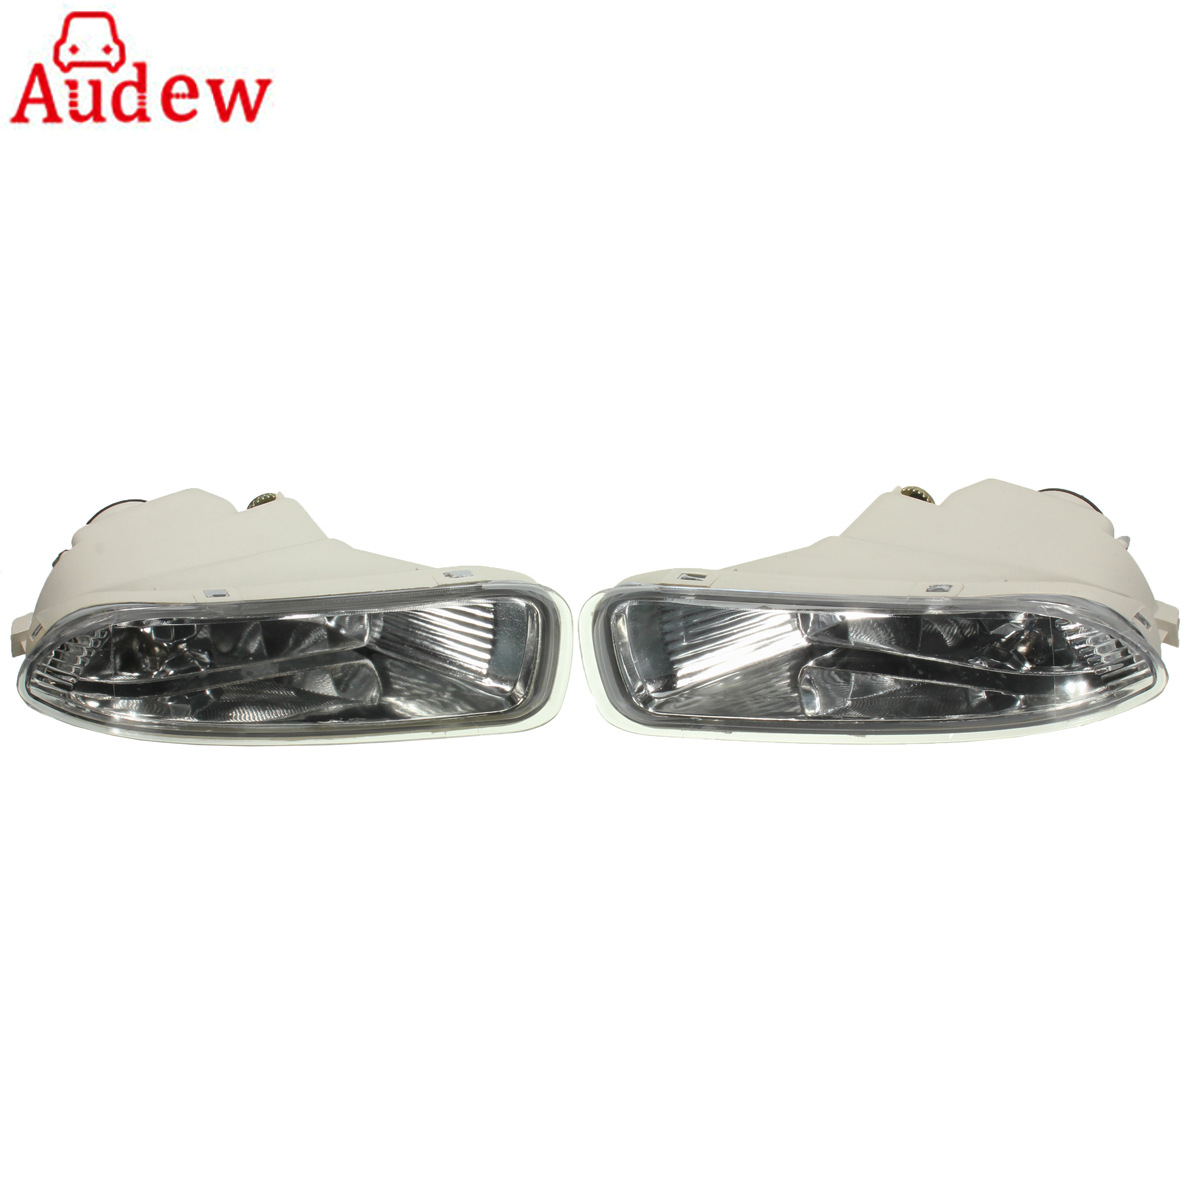 For Toyota/Corolla/Euro Series 2003-2004 1Pair Car Fog Driving Light Lamps Left&Right Side  Lamp Set  Yellow 12v 55w bulb car fog light lamp for 2003 toyota corolla ip67 free shipping